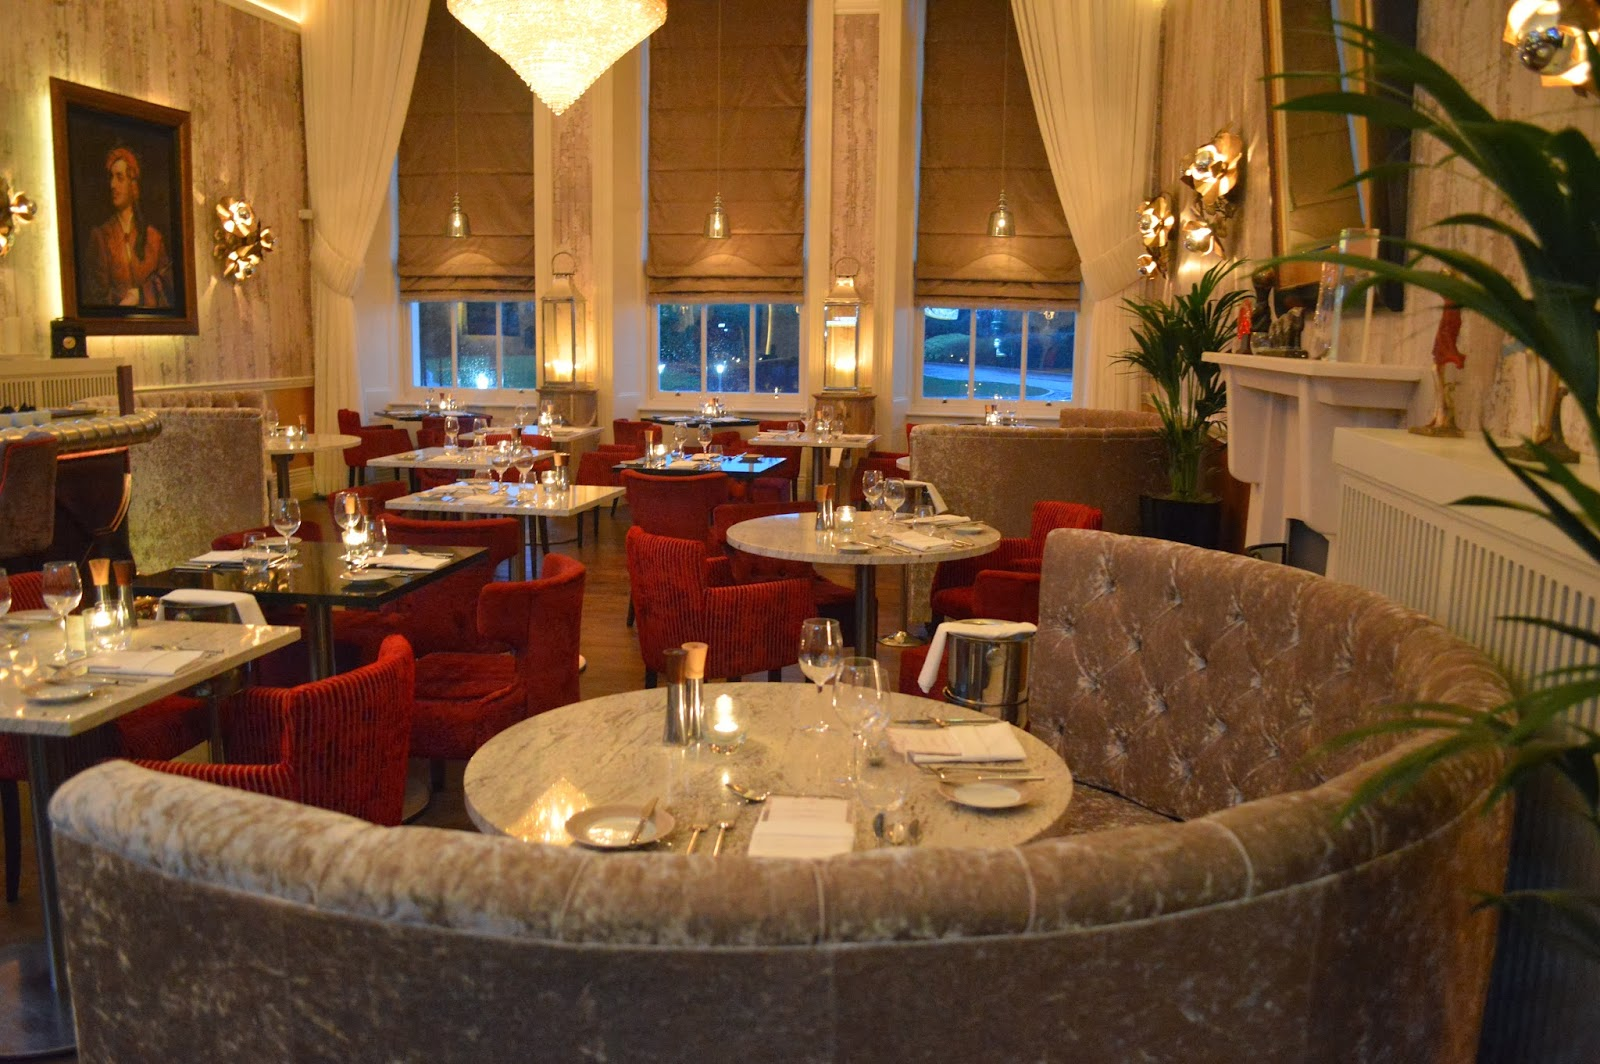 The secret diner seaham hall byron 39 s bar and grill by blunos - Restaurant bar and grill ...